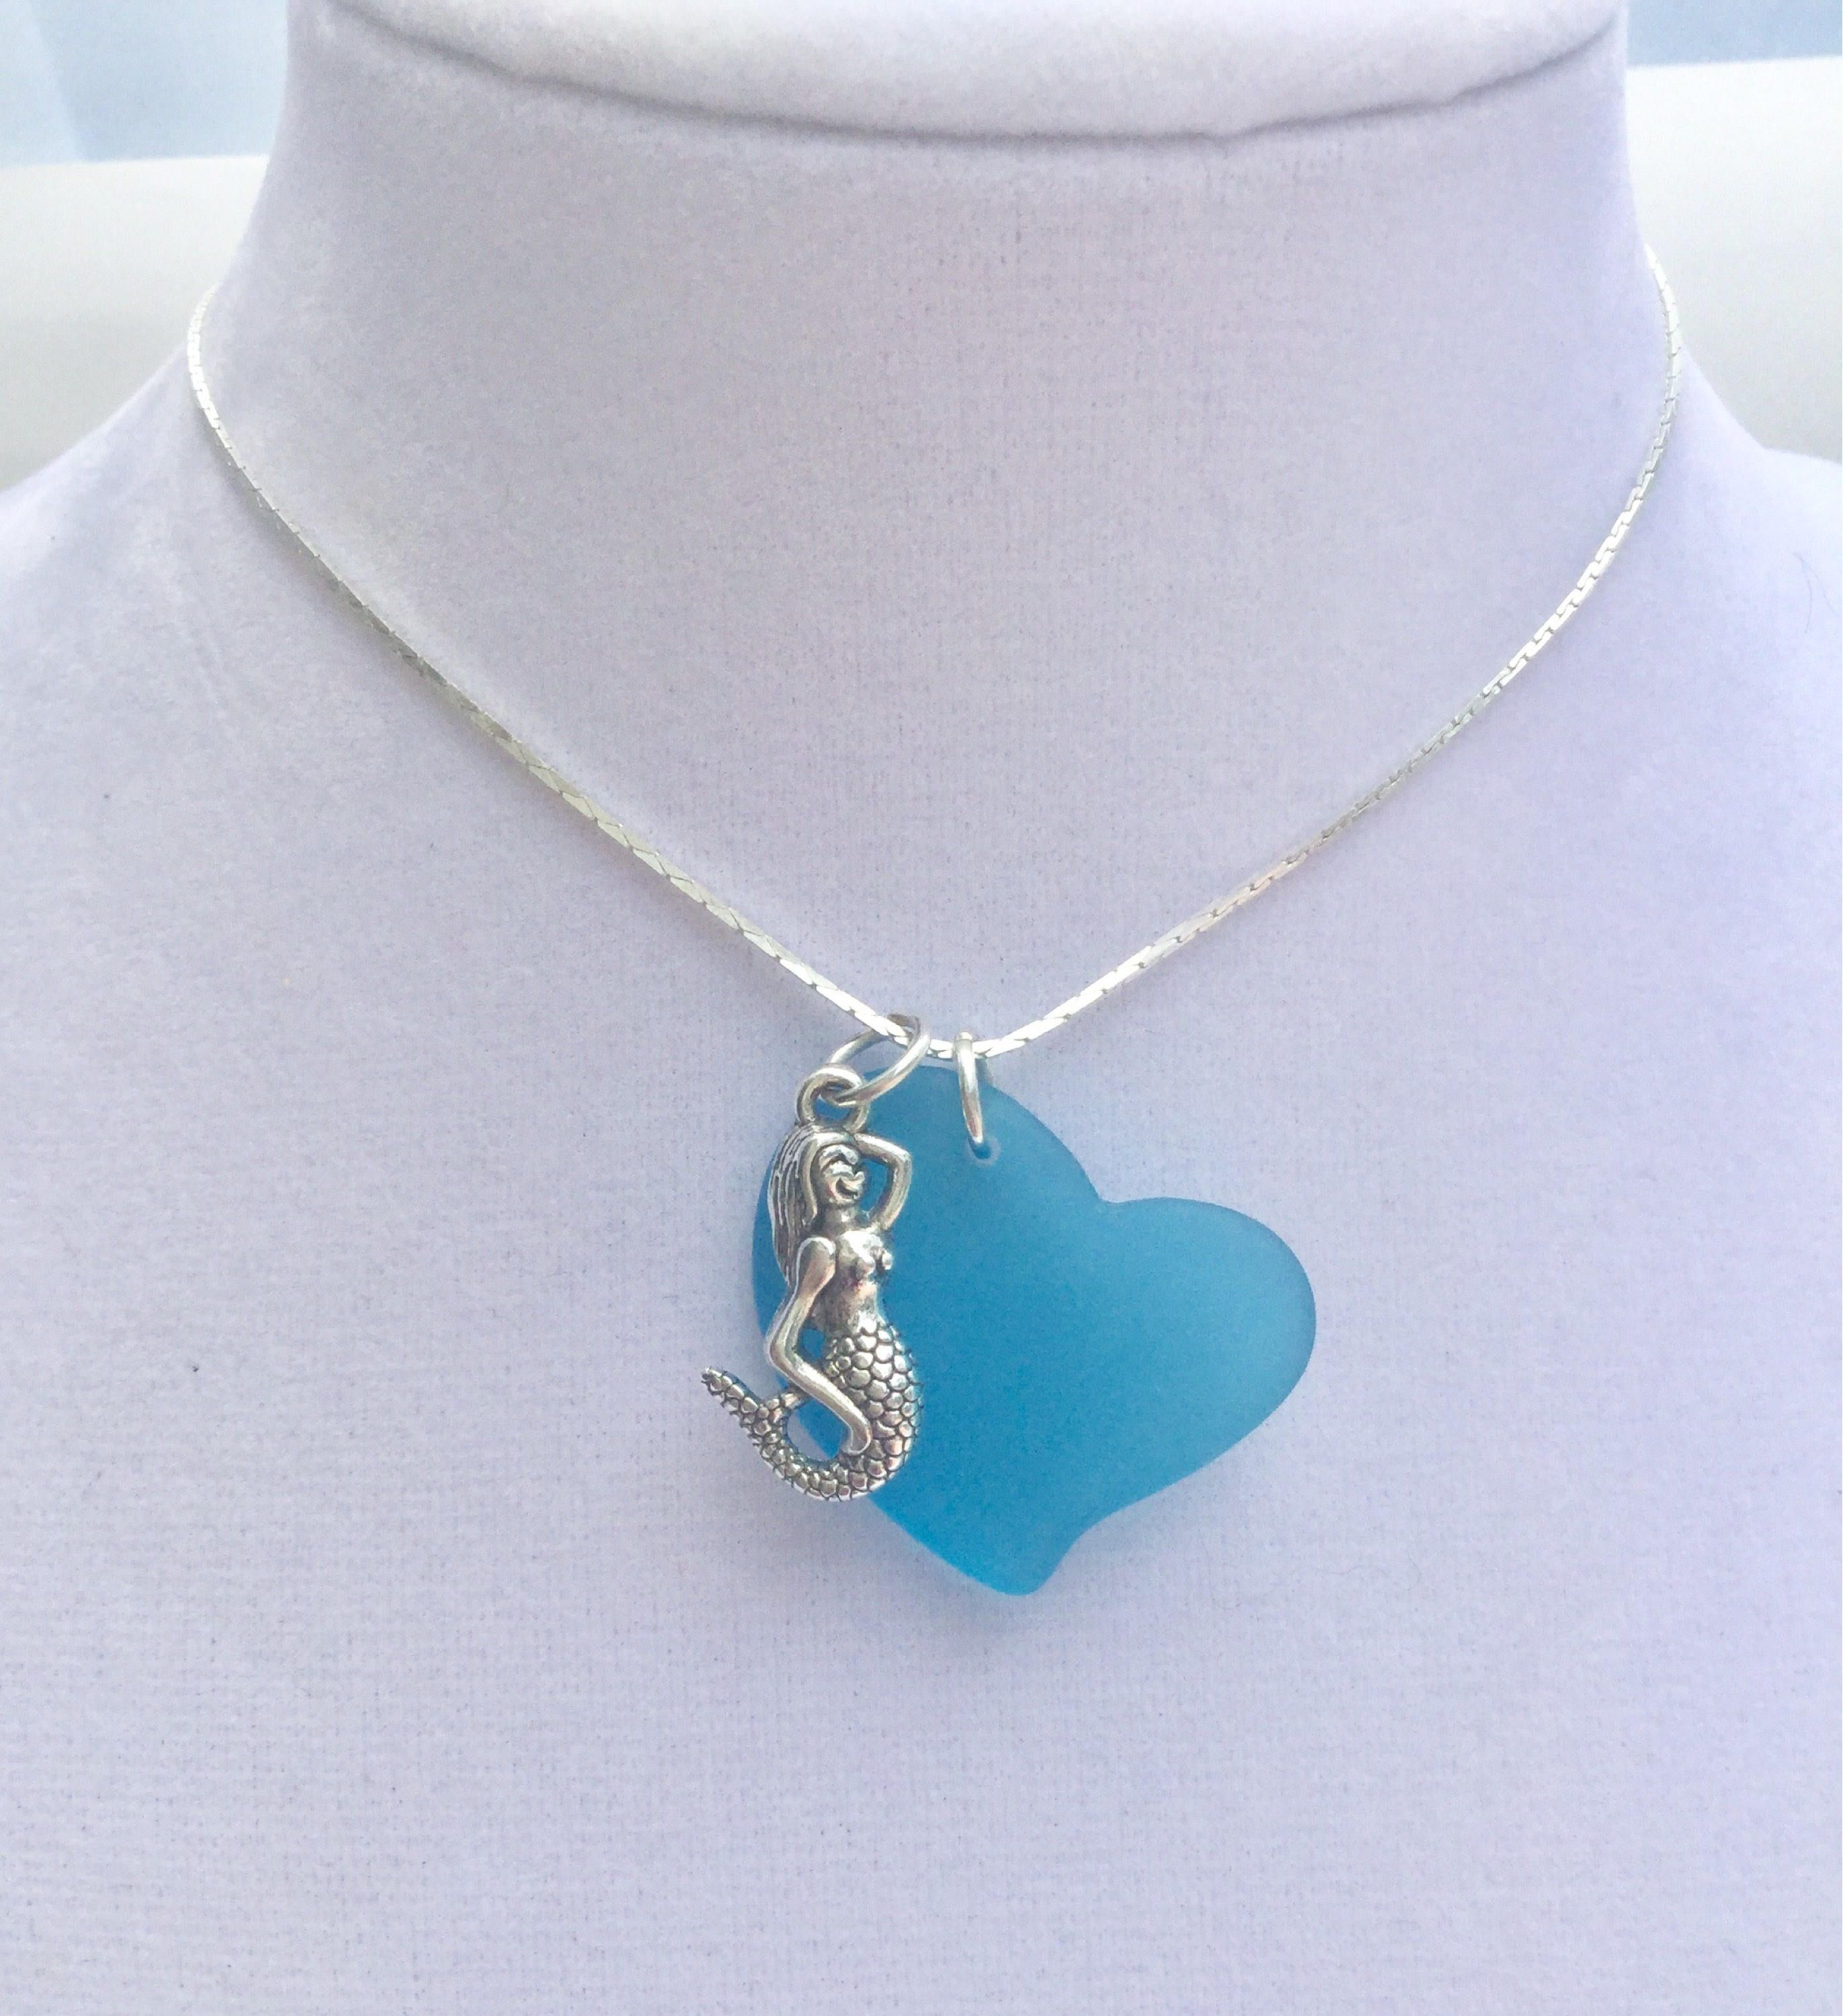 Photo of Sea Glass Necklace , blue heart necklace  ,beach jewelry , gift fot her , blue Seaglass necklace , coastal jewelry nautical